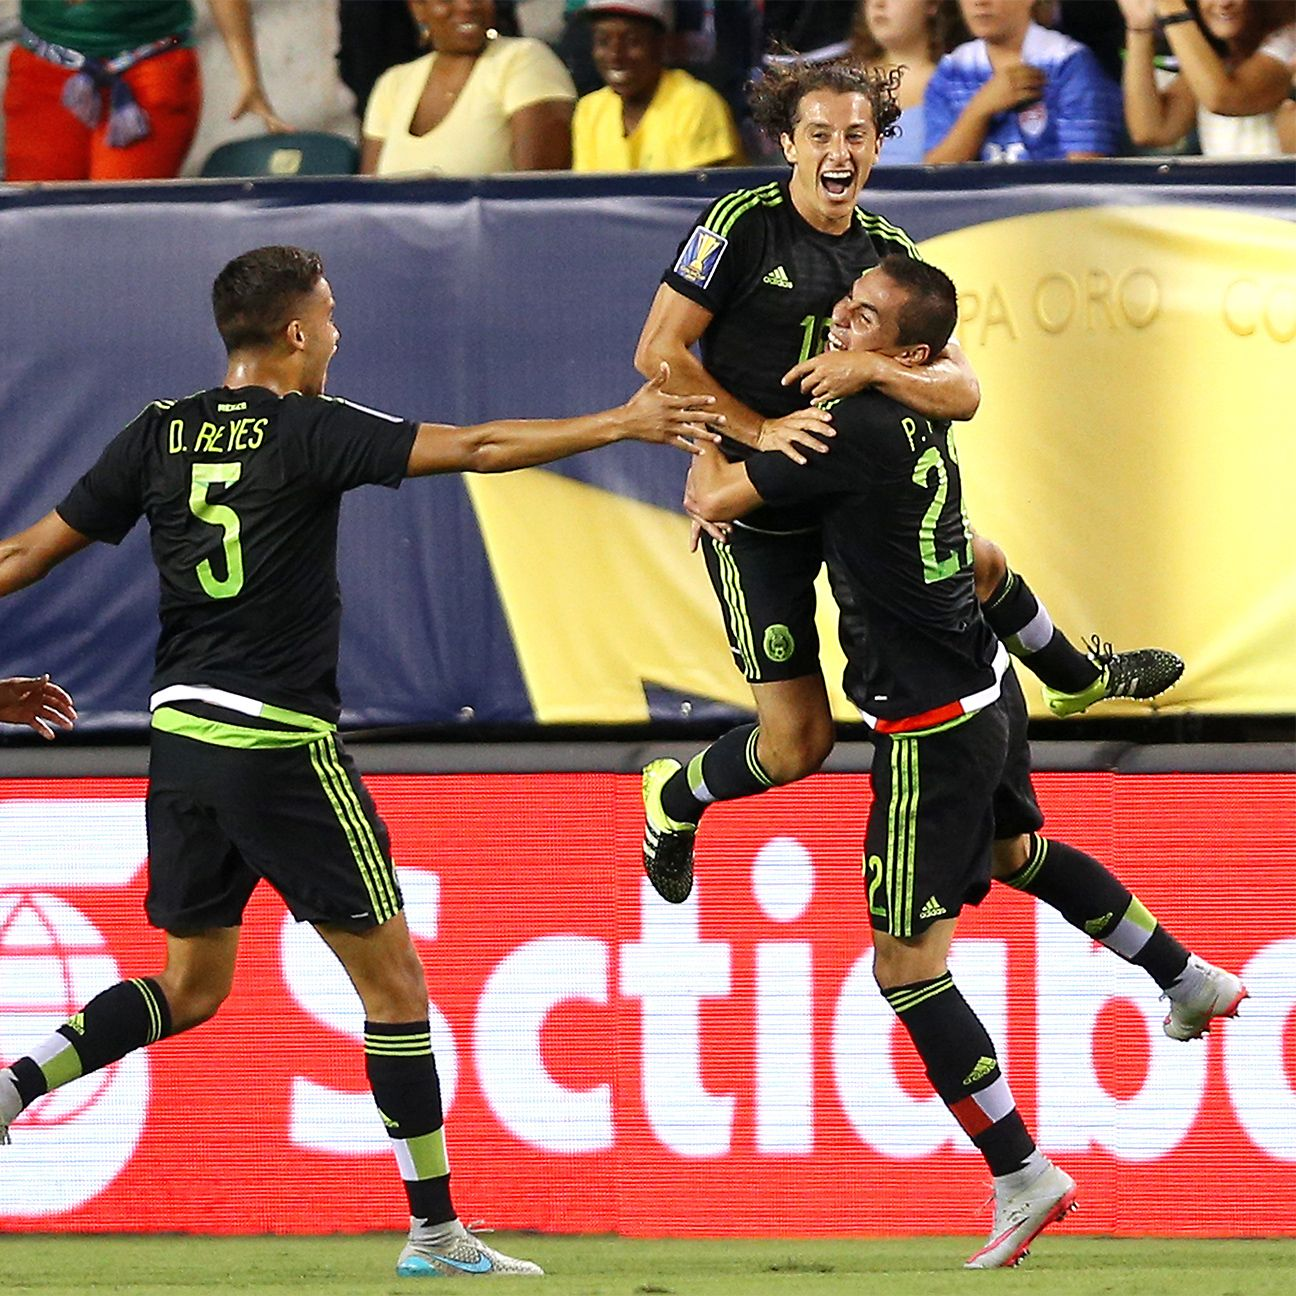 Andres Guardado's volley to open the scoring in Sunday's Gold Cup final was Mexico's first in the knockout round.